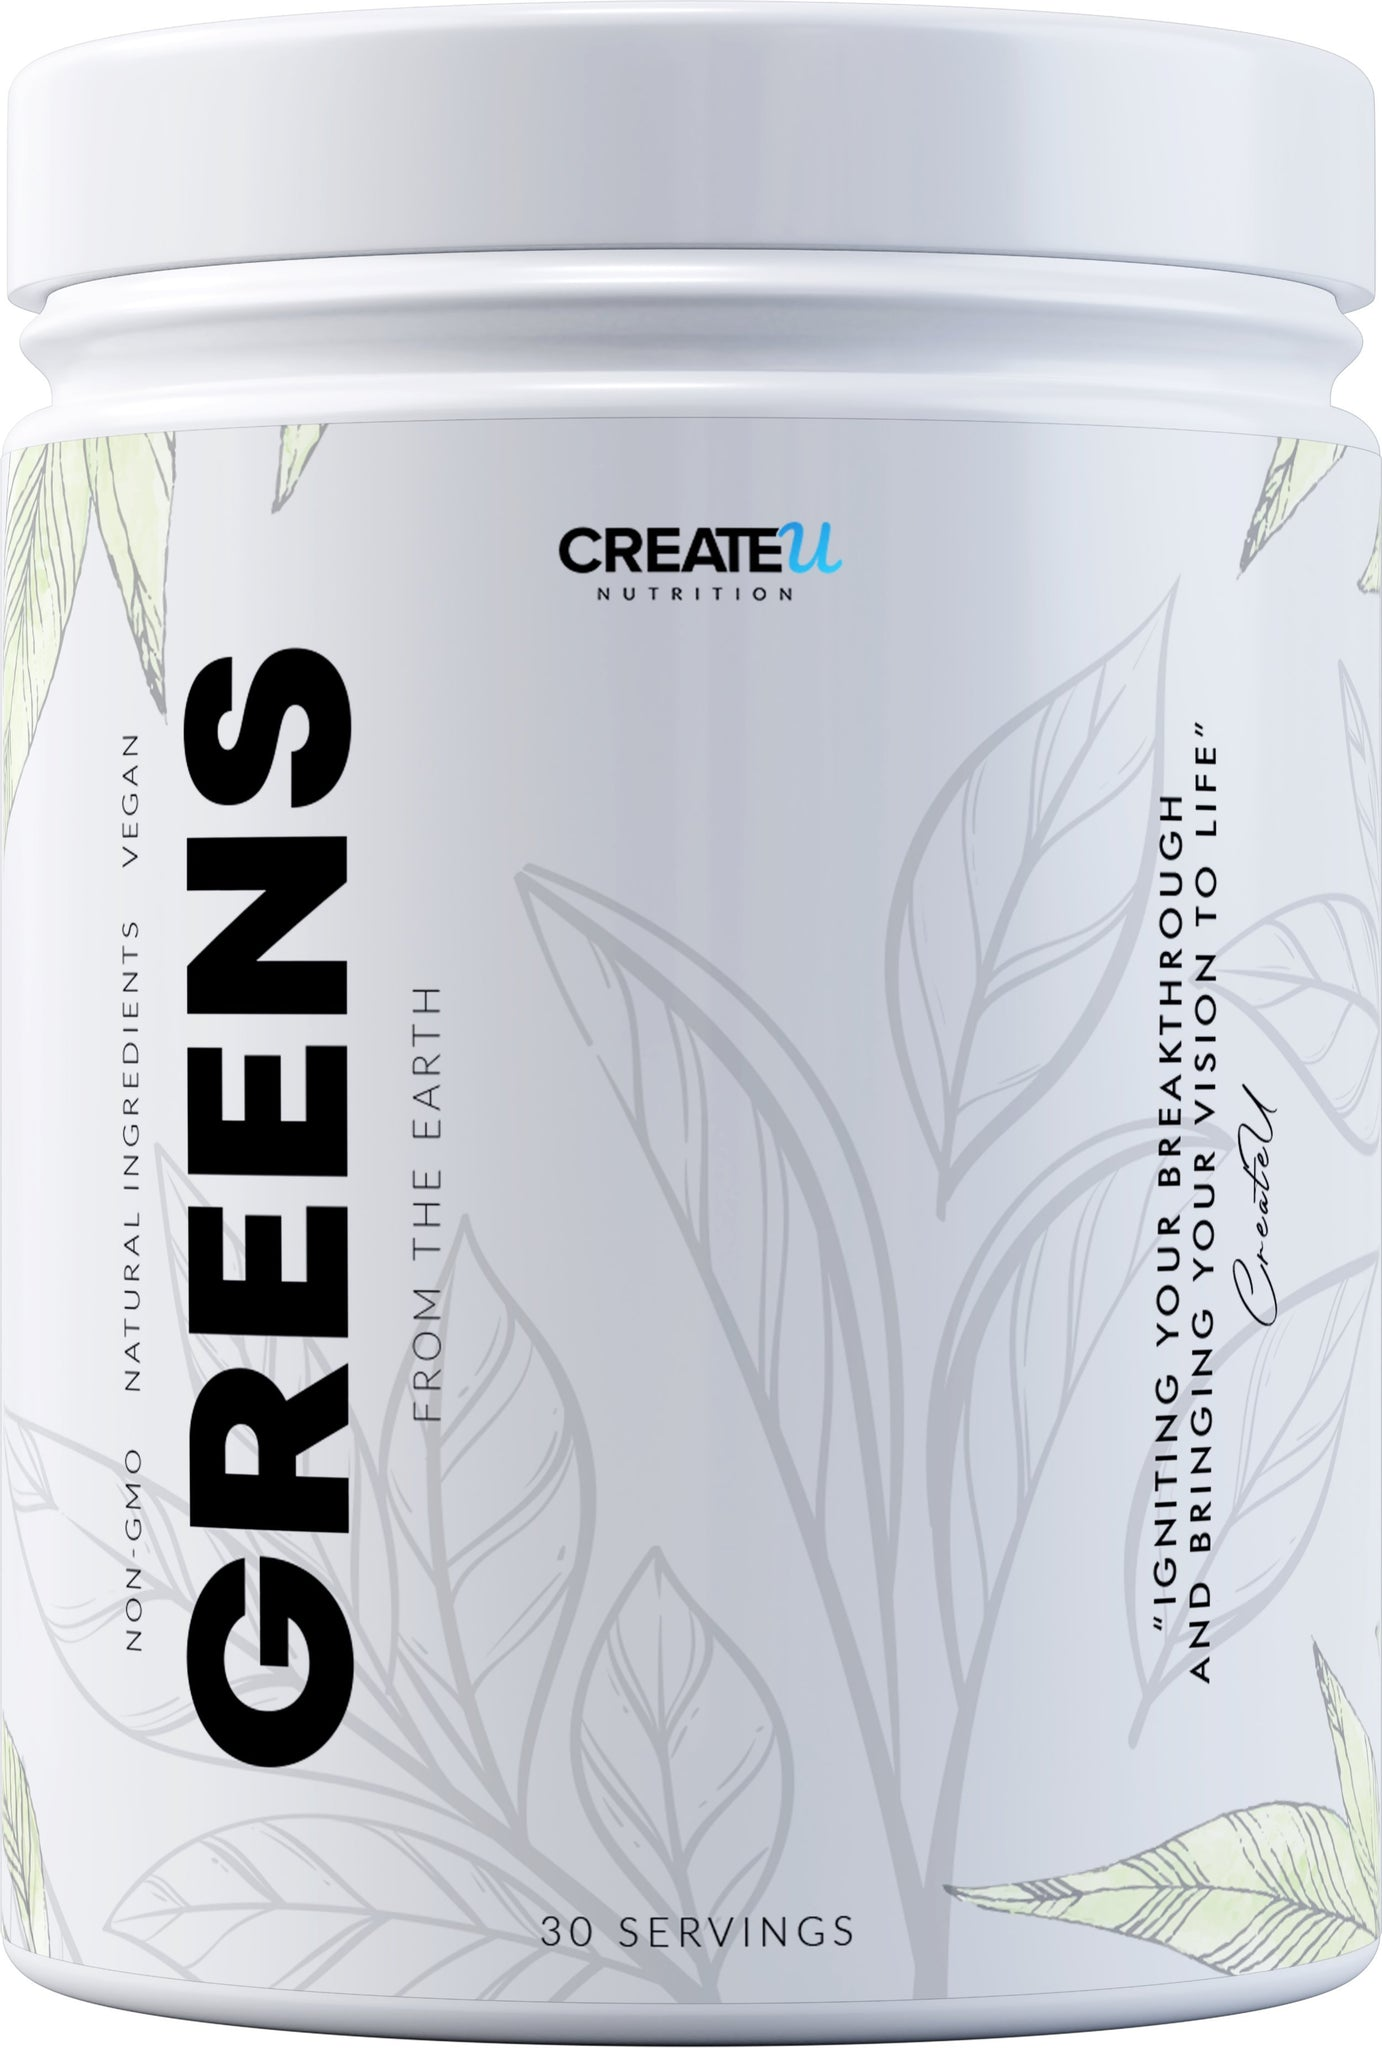 Chase - Green Juice (Backorder) supplement CreateUNutrition.com